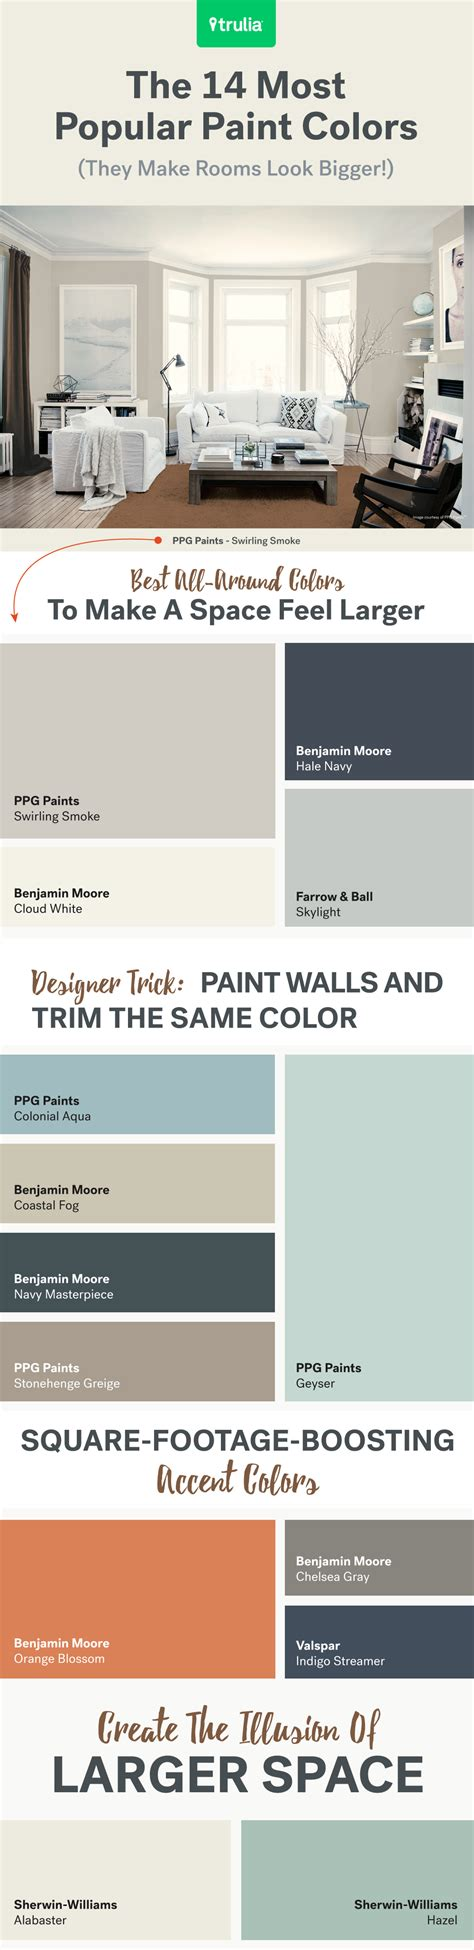 popular paint colors 14 popular paint colors for small rooms life at home trulia blog